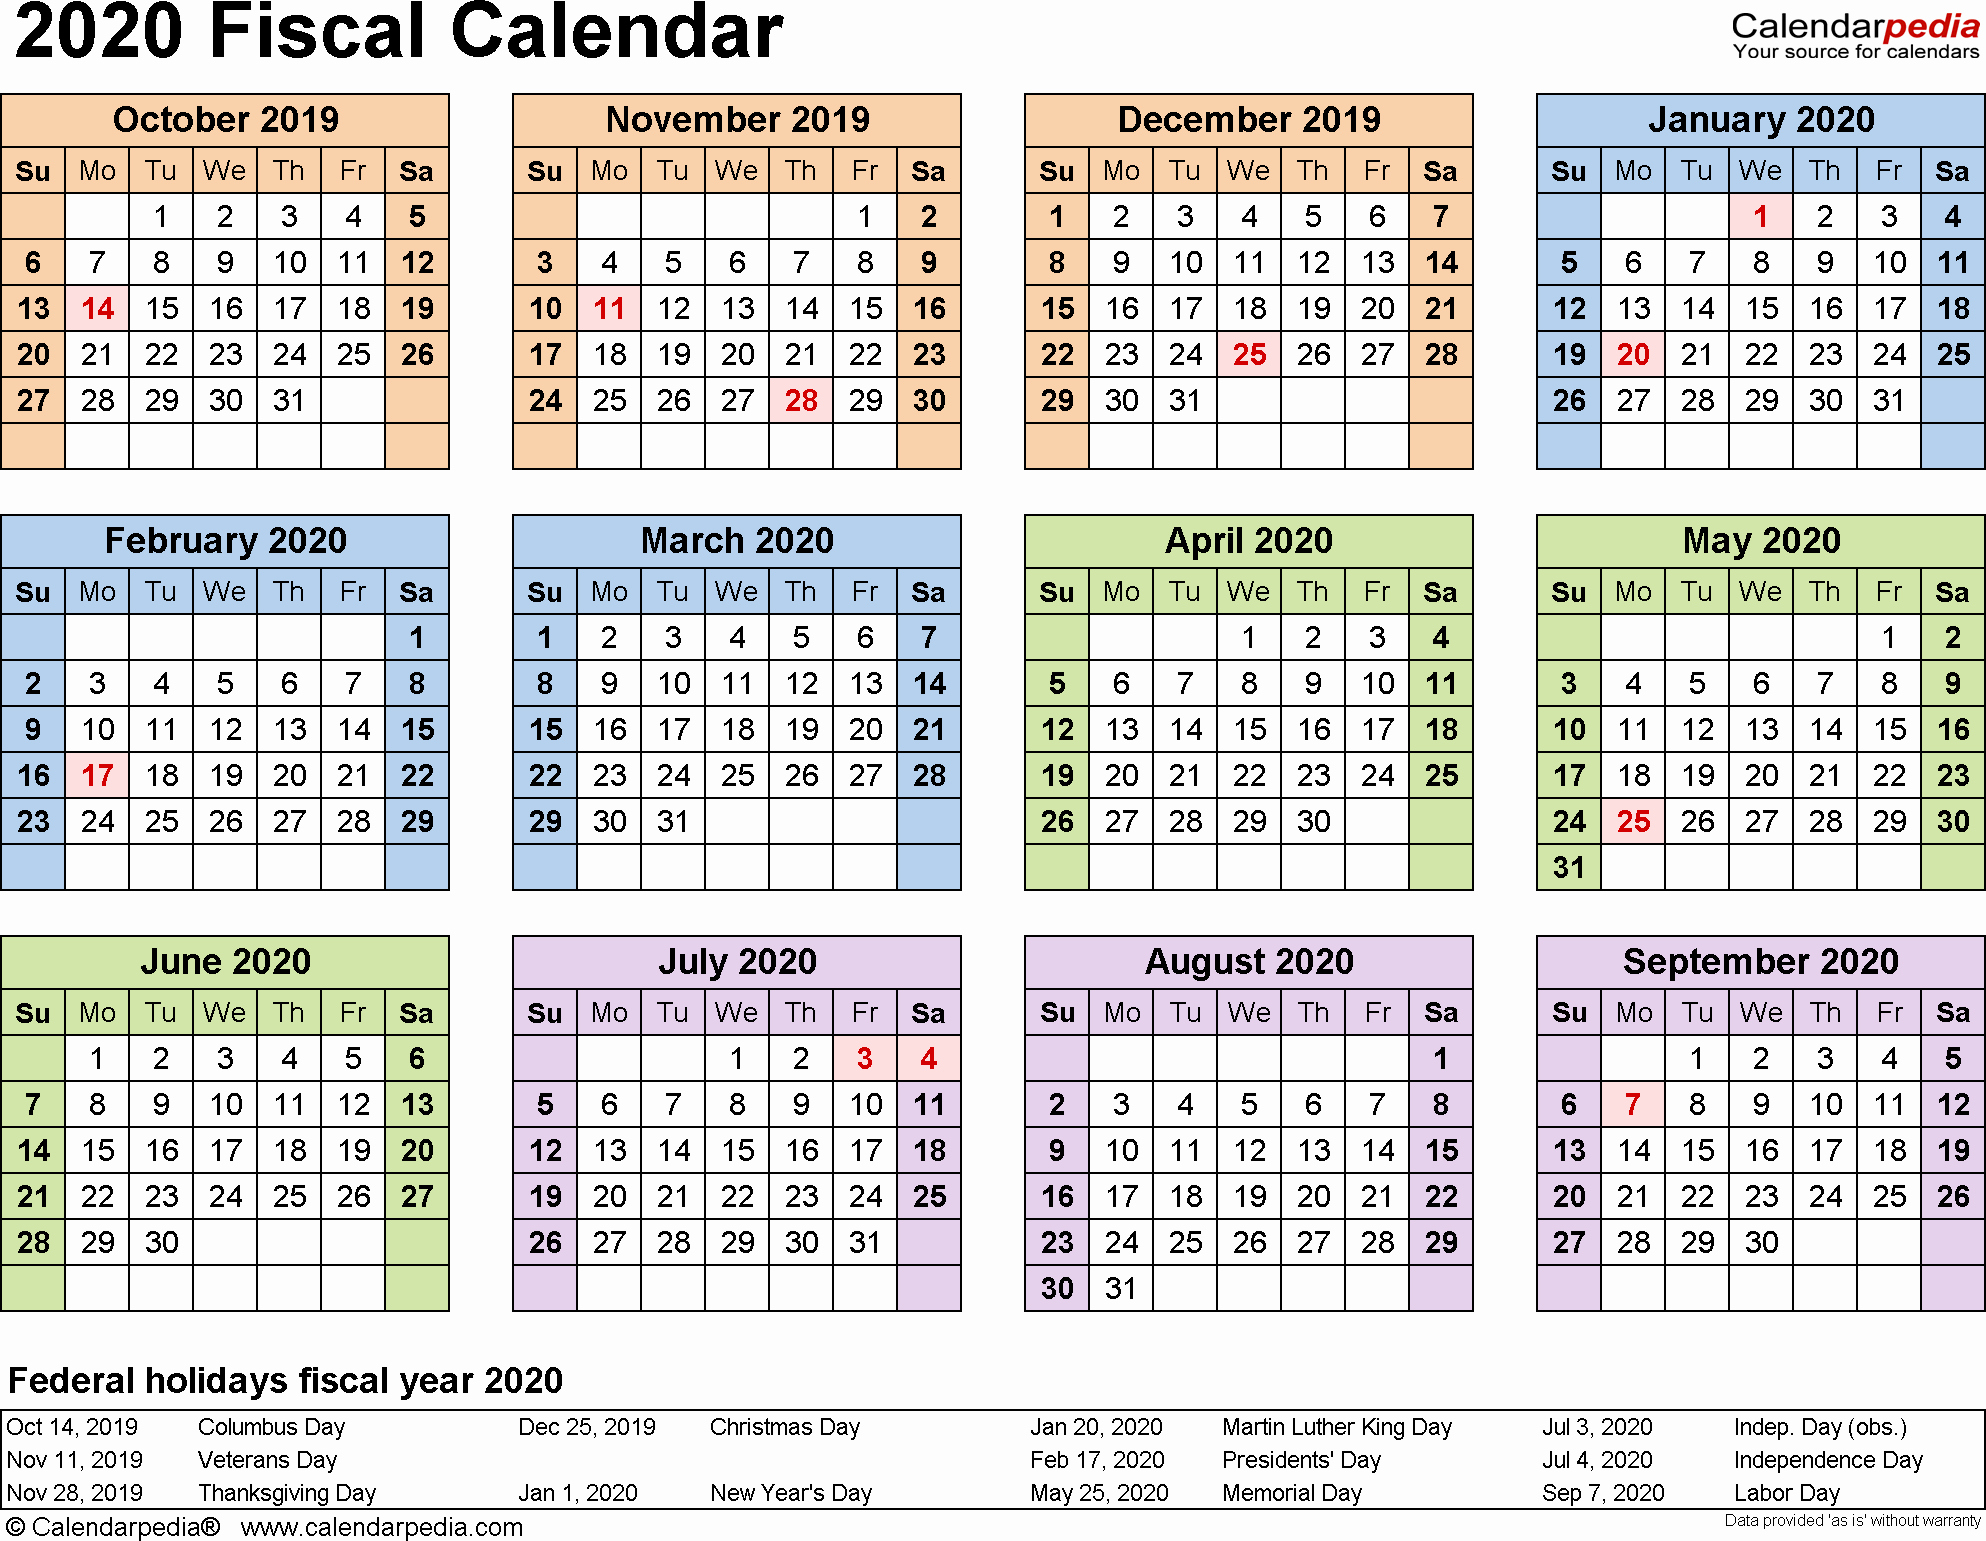 2019 Biweekly Payroll Calendar Template Excel New Fiscal Calendars 2020 as Free Printable Excel Templates